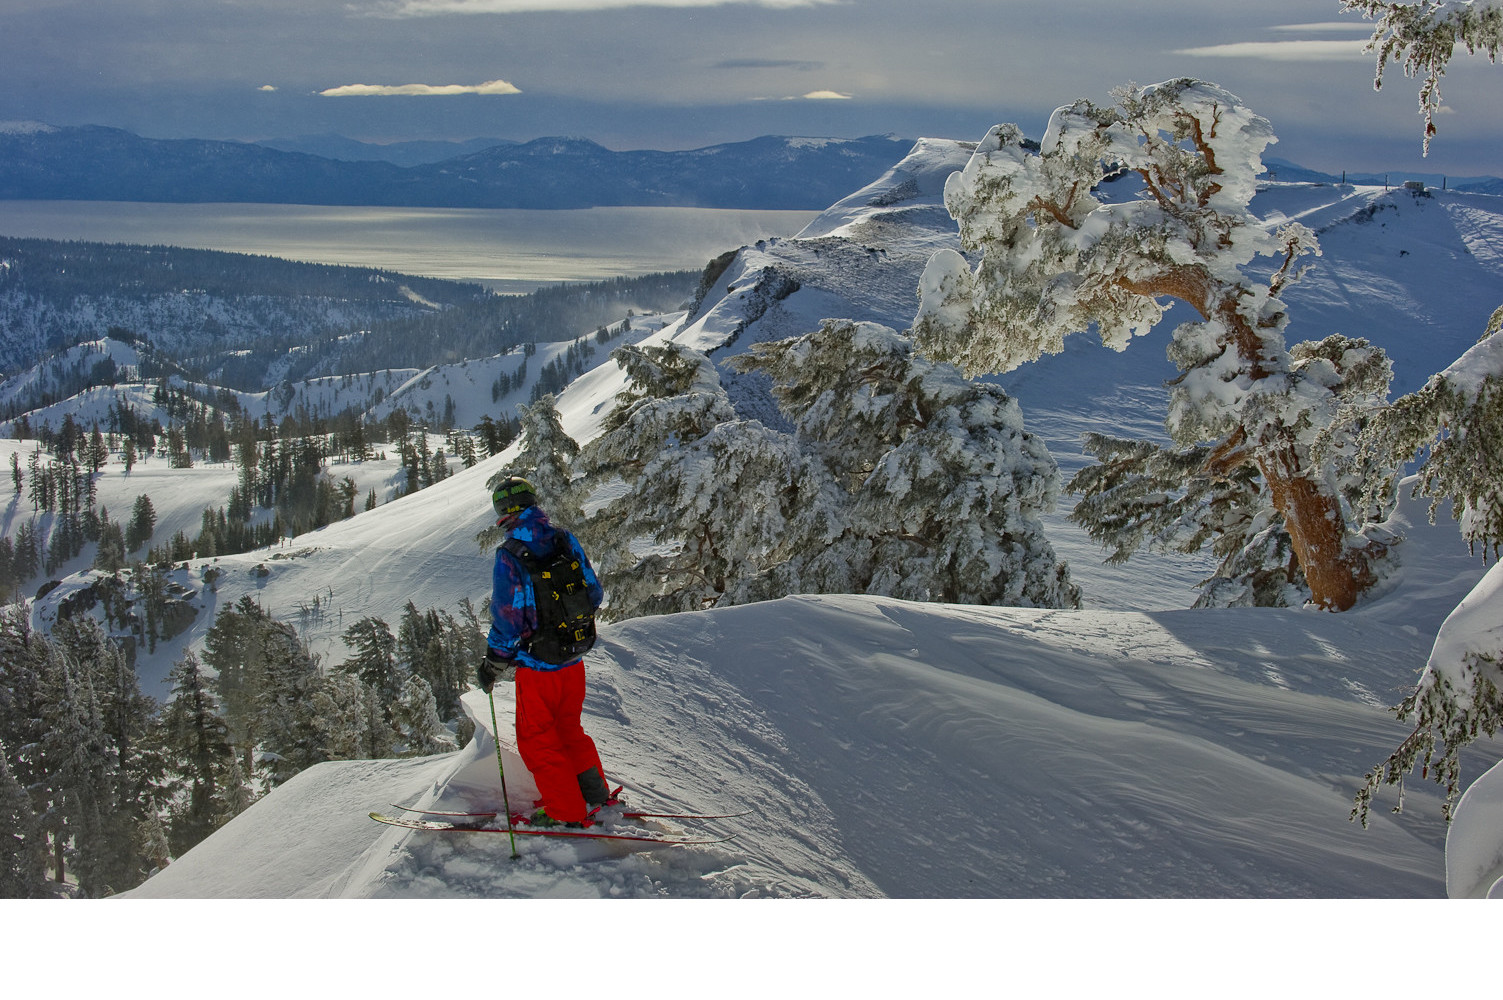 Snow Conditions Squaw Valley - Alpine Meadows Snow Report | Onthesnow